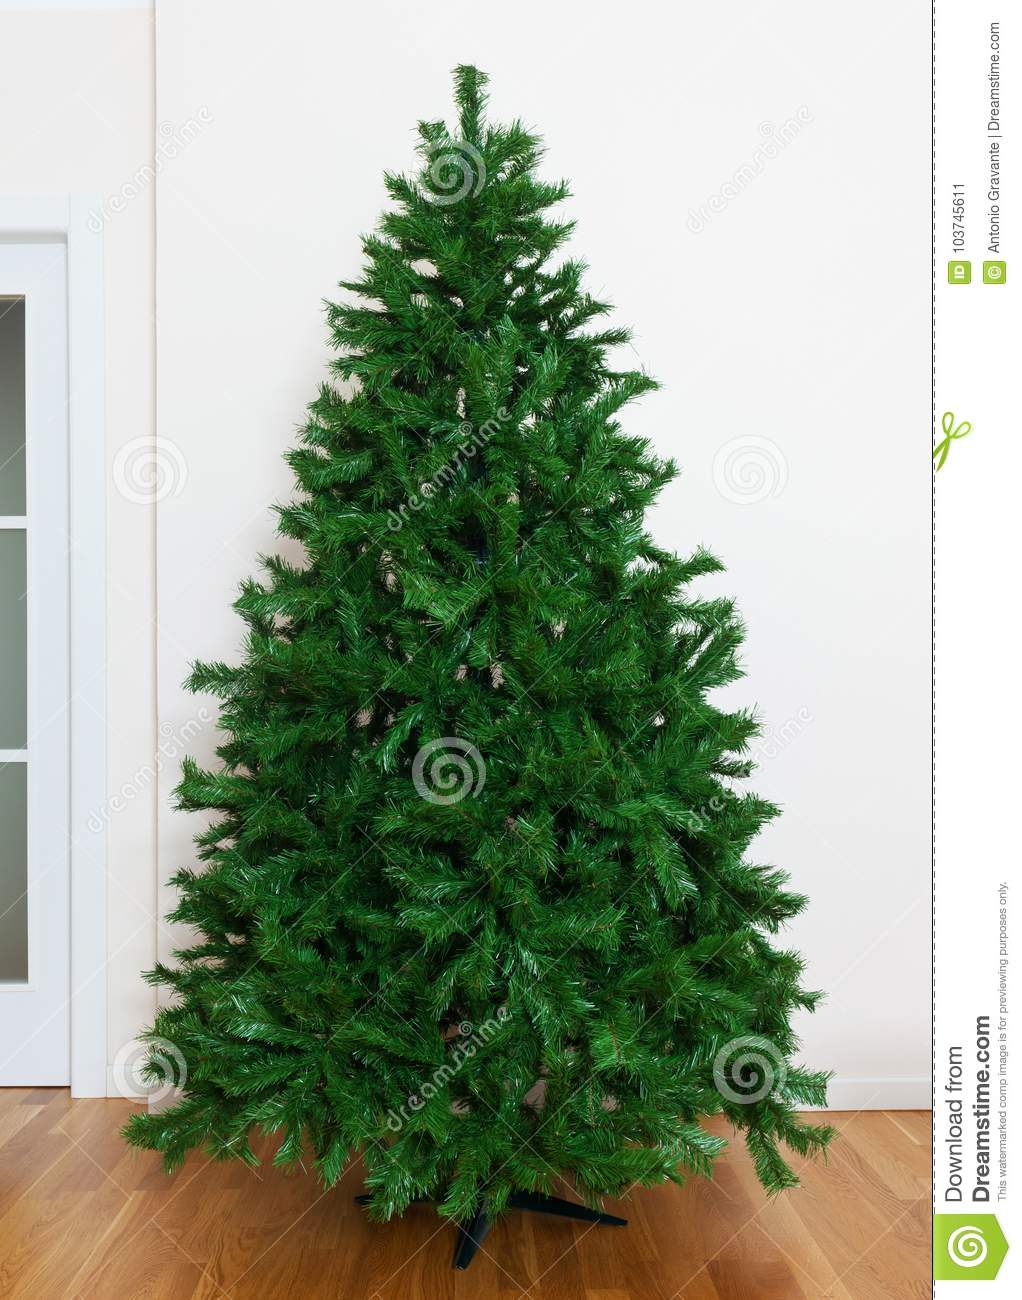 Artificial Christmas Tree Branches.Bare Artificial Christmas Tree Stock Image Image Of